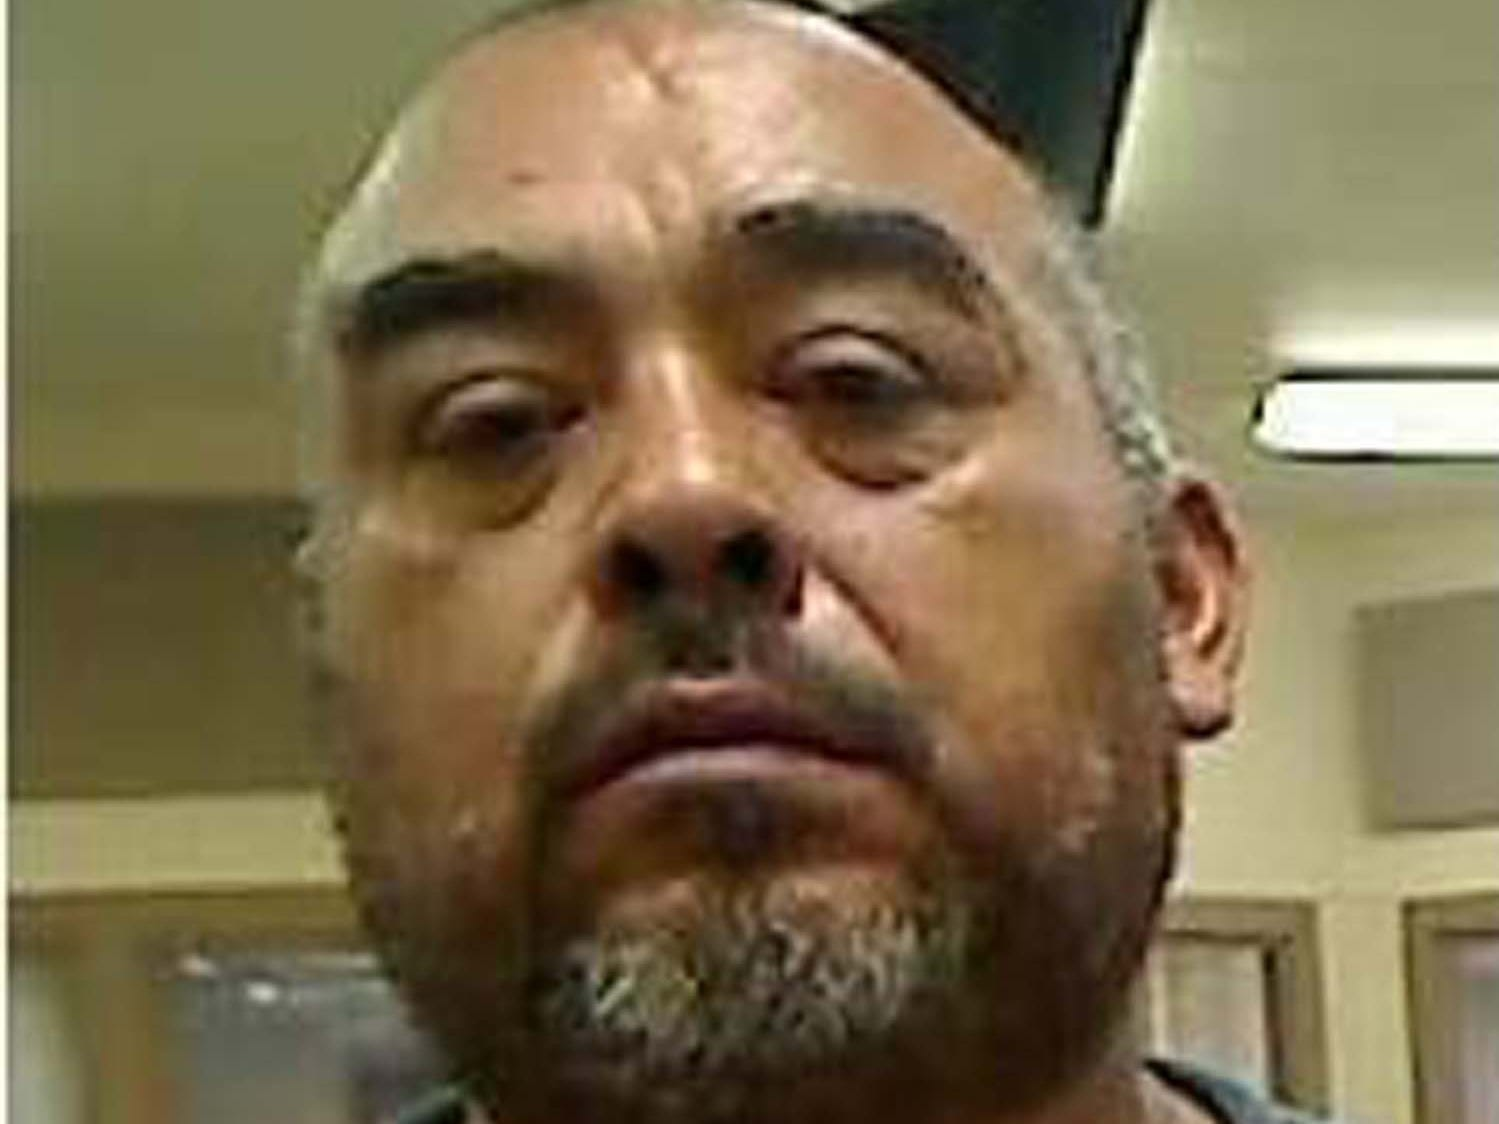 Cenobio Ismael Arizon-Perez, 45, is wanted by the Nevada Department of Public Safety's Investigation Division for failing to appear in court for drug-related charges. He was initially charged with two counts of trafficking a controlled substance. He is 5 feet 8 inches tall and weighs 200 pounds. He has black hair and brown eyes and has a pierced left ear. He also has a scar on his abdomen and over his left eye. He is known to have violent tendencies and has ties in Mexico.